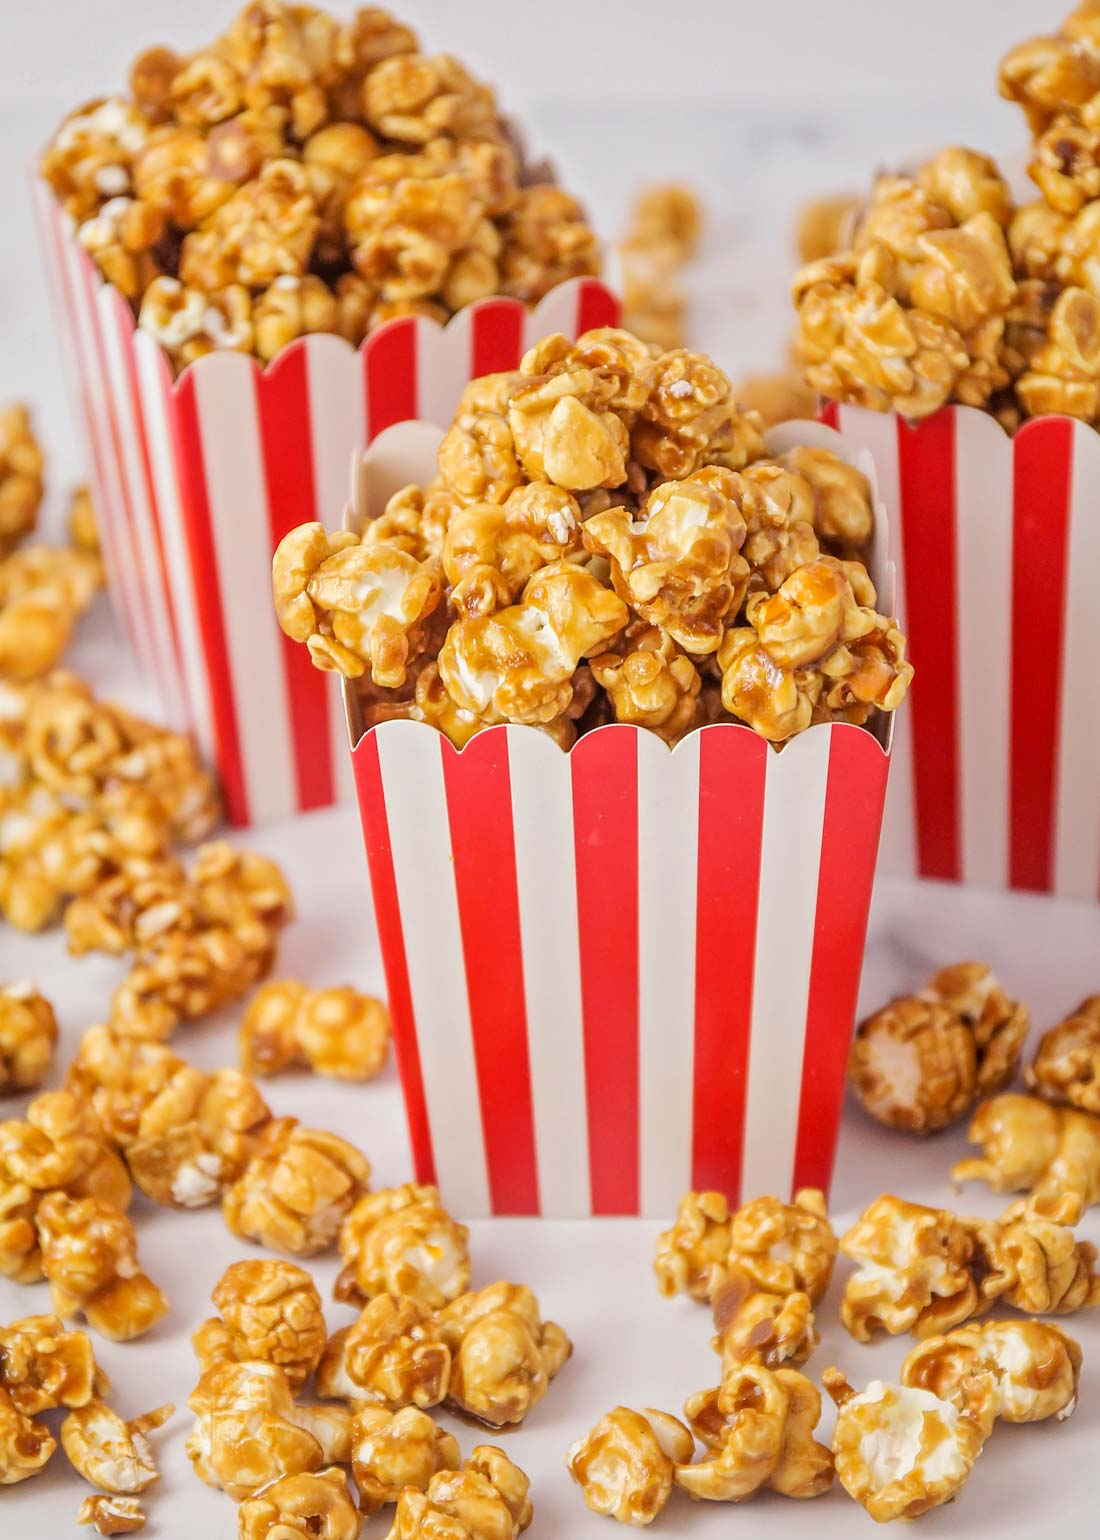 Homemade caramel corn in striped popcorn containers